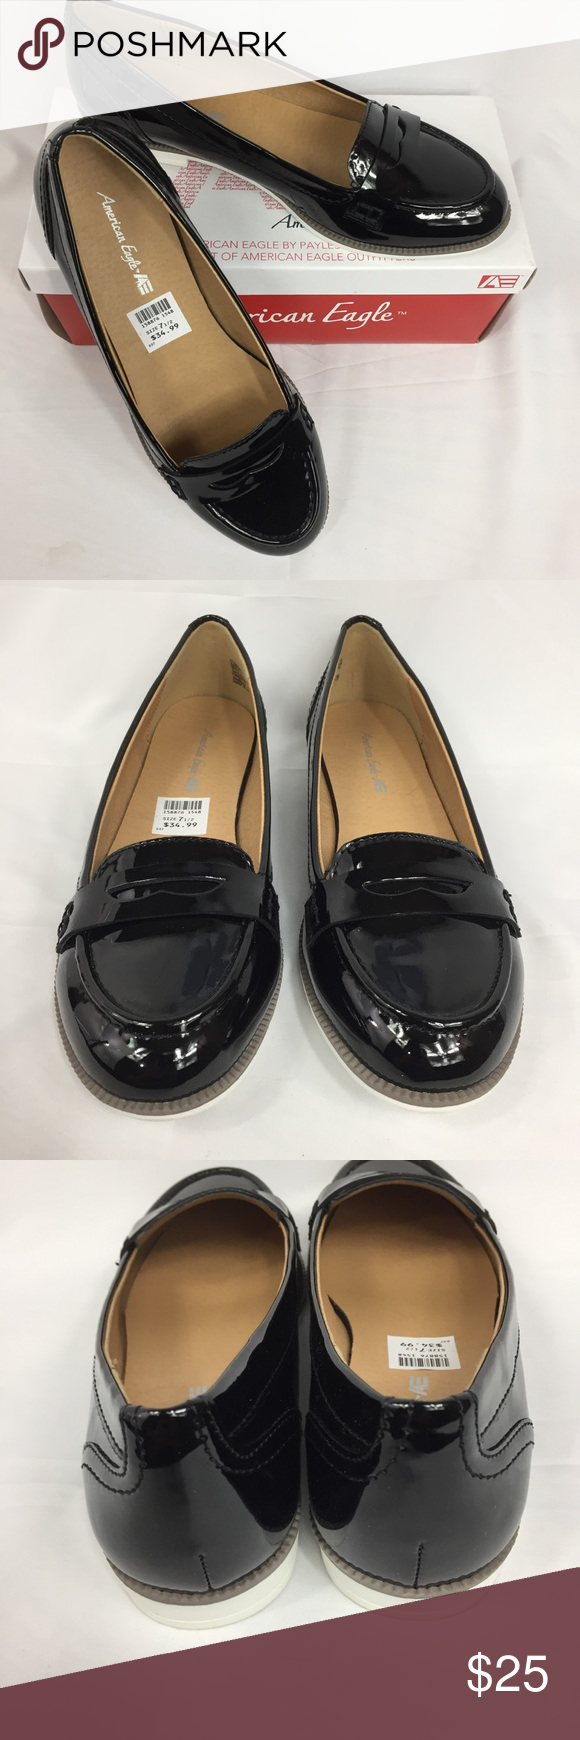 887504b61c8 American Eagle for Payless Patent Penny Loafer 7.5 New in box Faux patent  leather in black with white sole. Please see pictures for details.